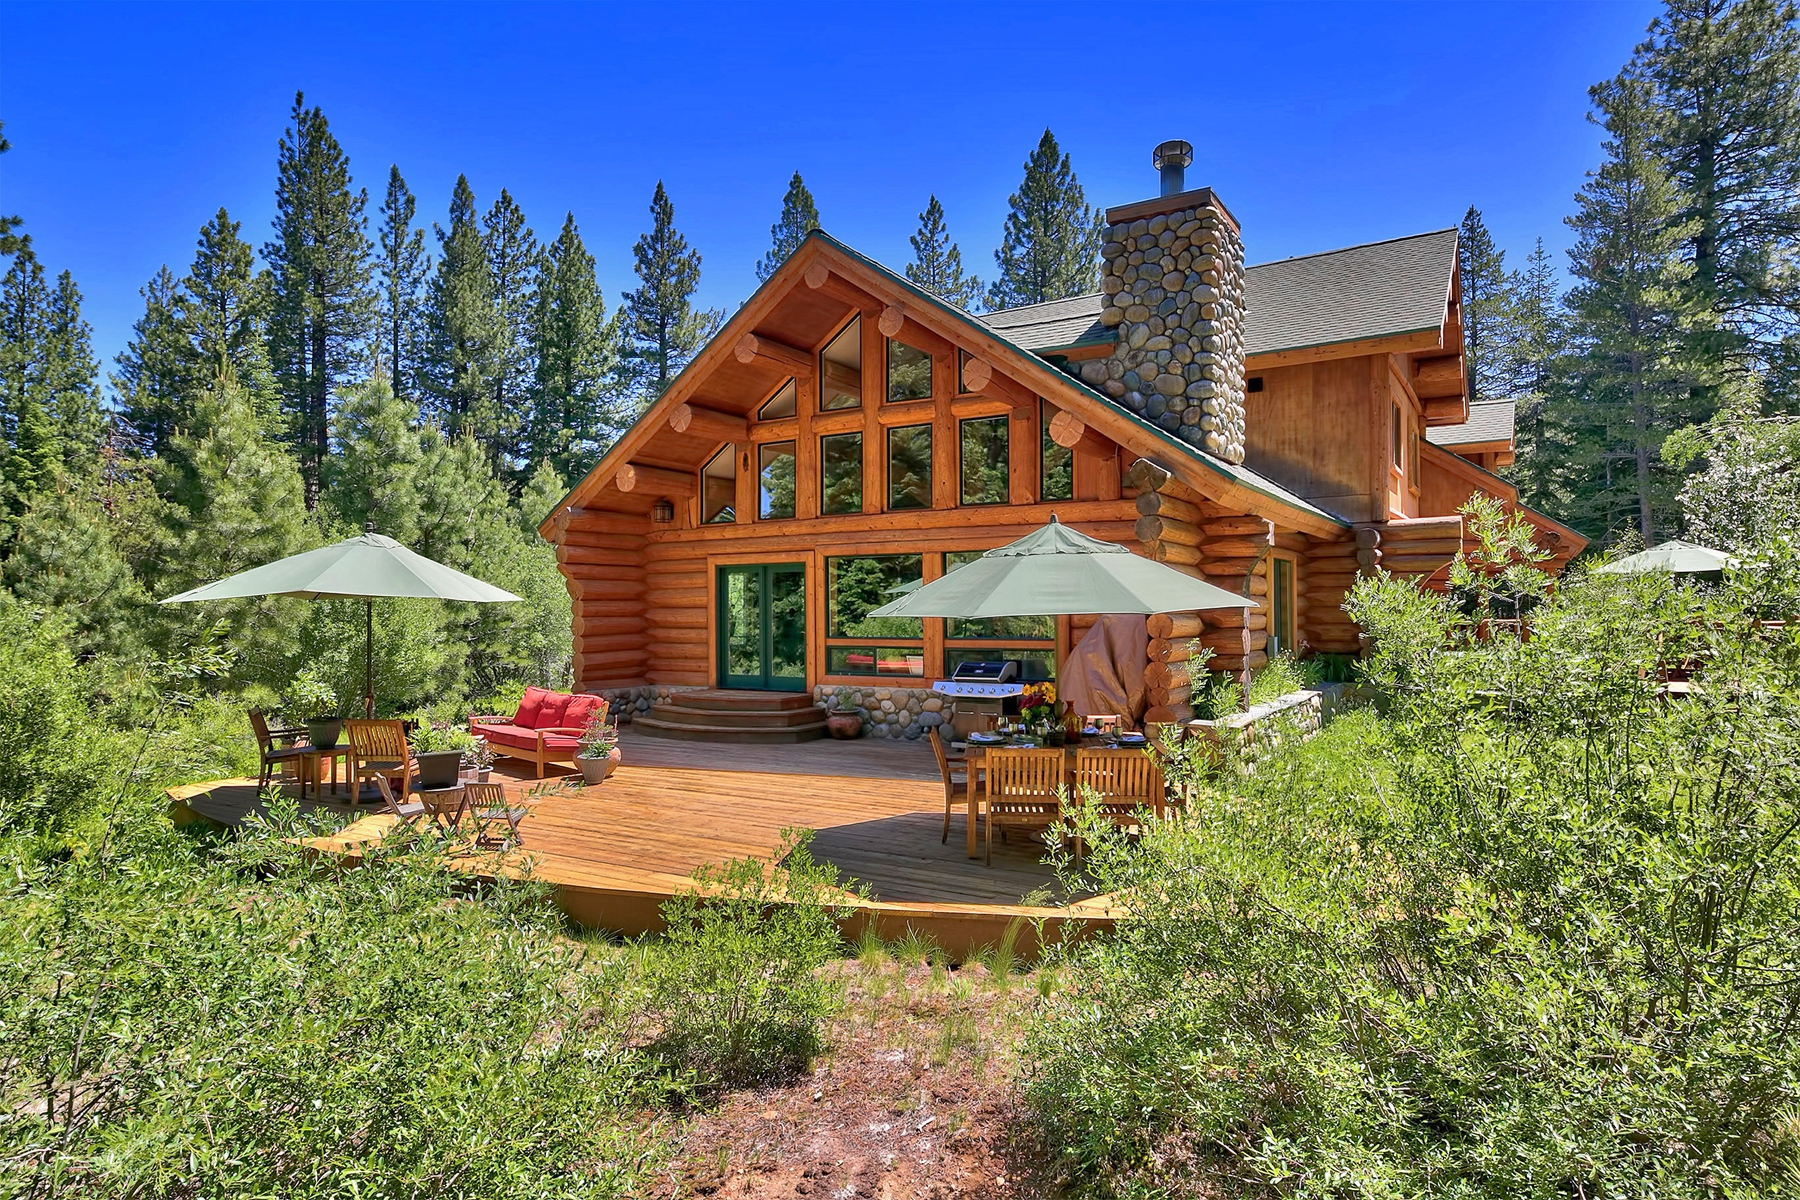 Property for Active at 11979 Stony Creek Court, Truckee CA 96161 11979 Stony Creek Court Truckee, California 96161 United States